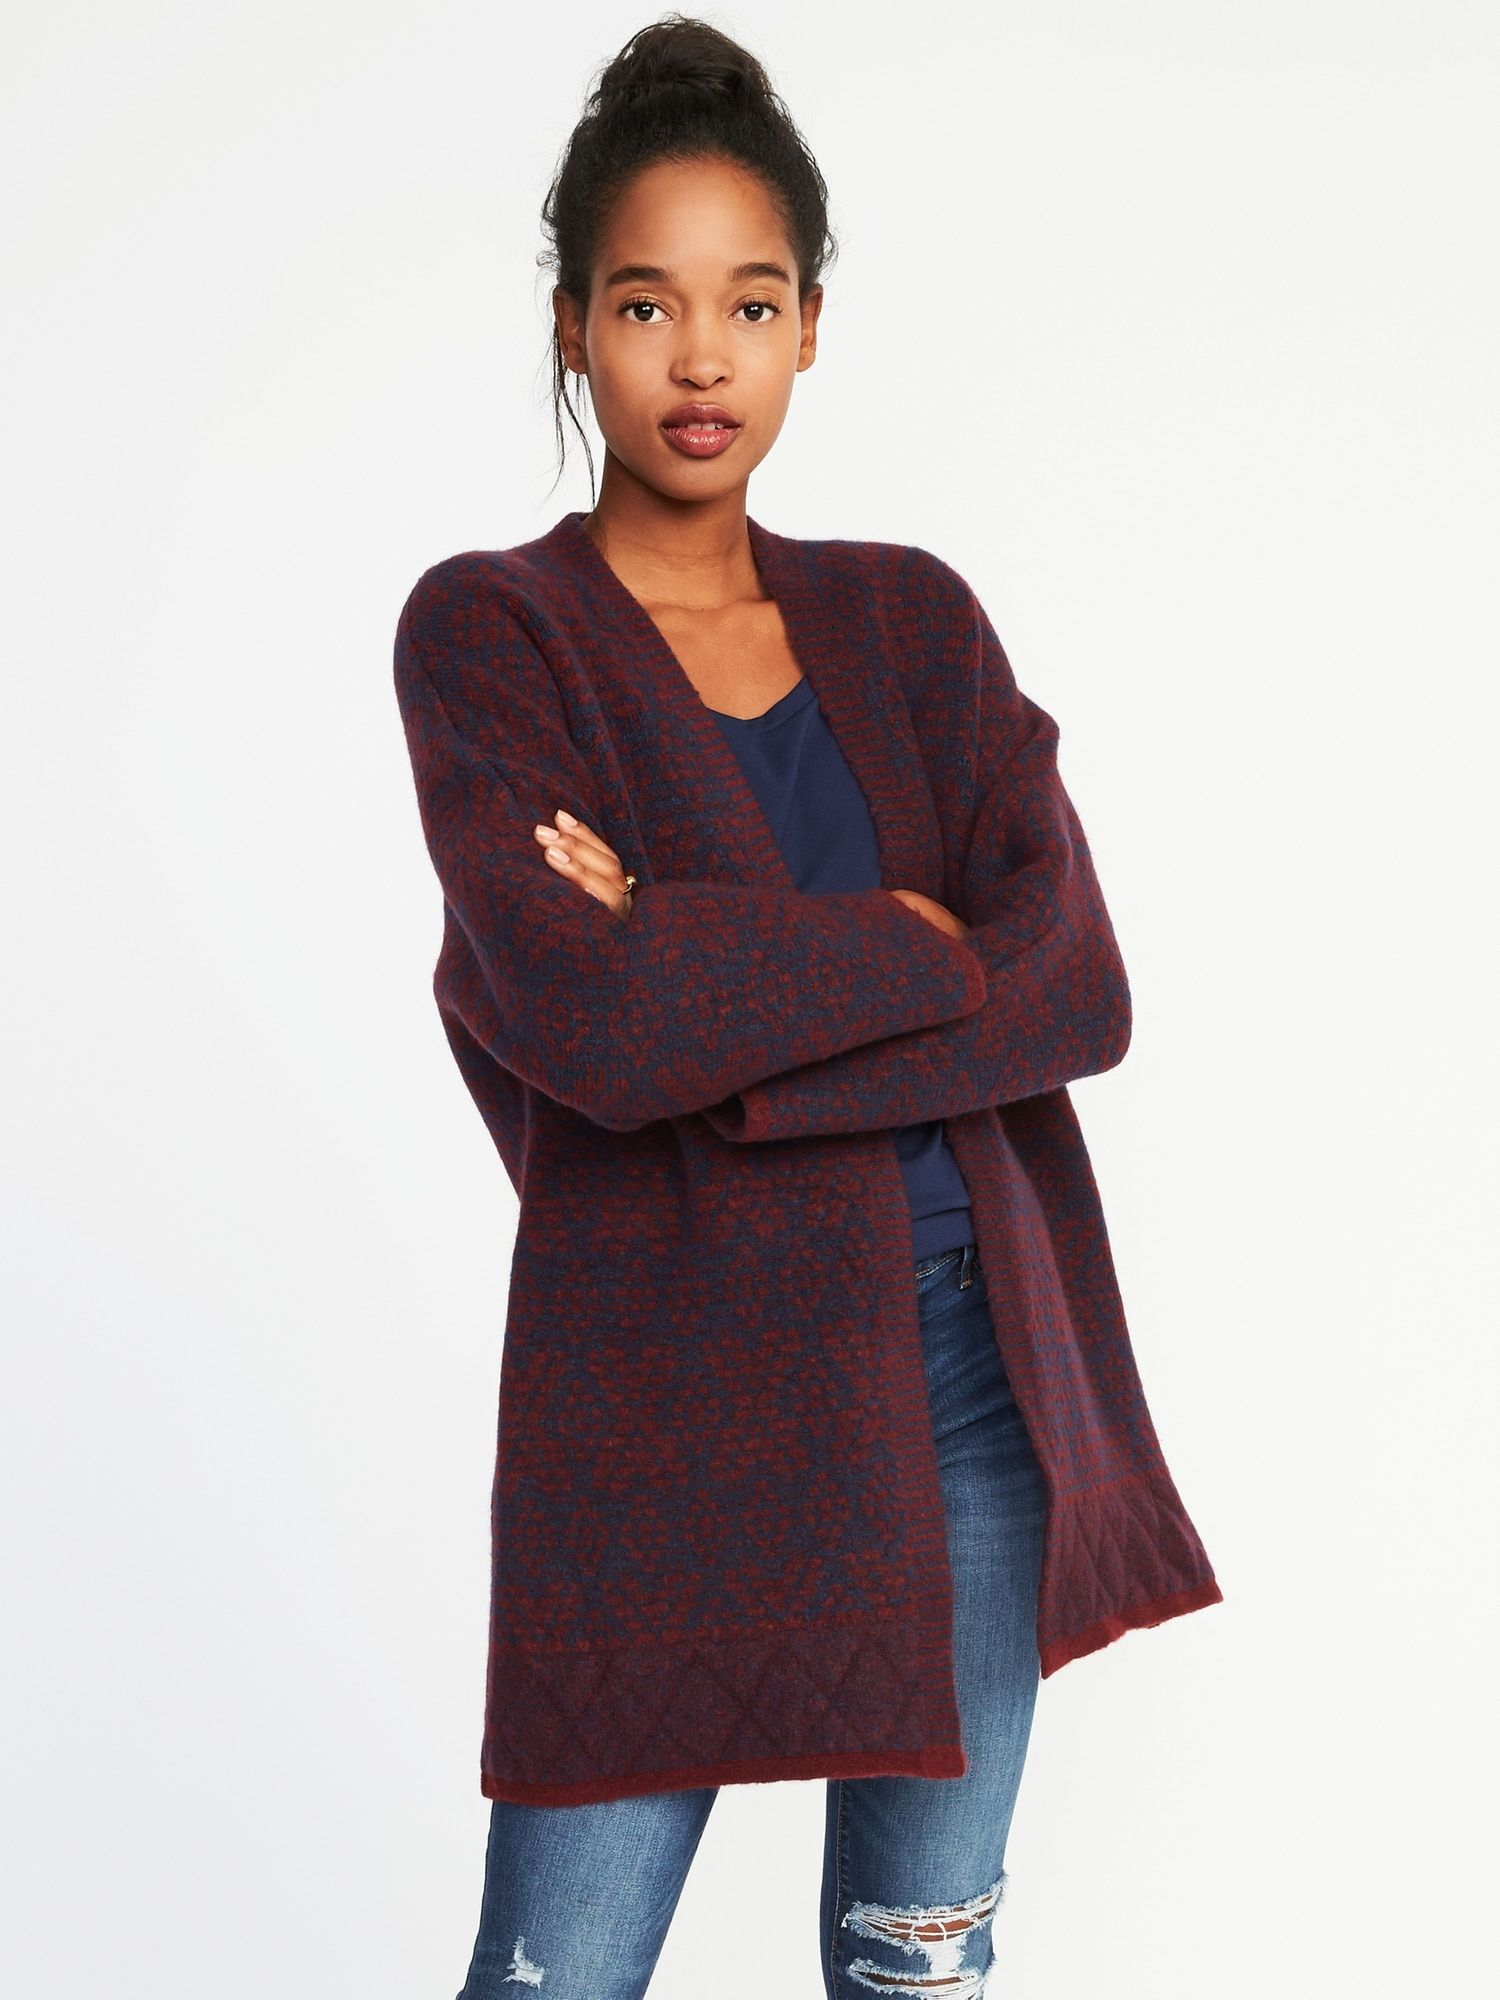 58f879dea1e368 Patterned Open Front Cardi-Coat for Women | Old Navy | Clothes in ...